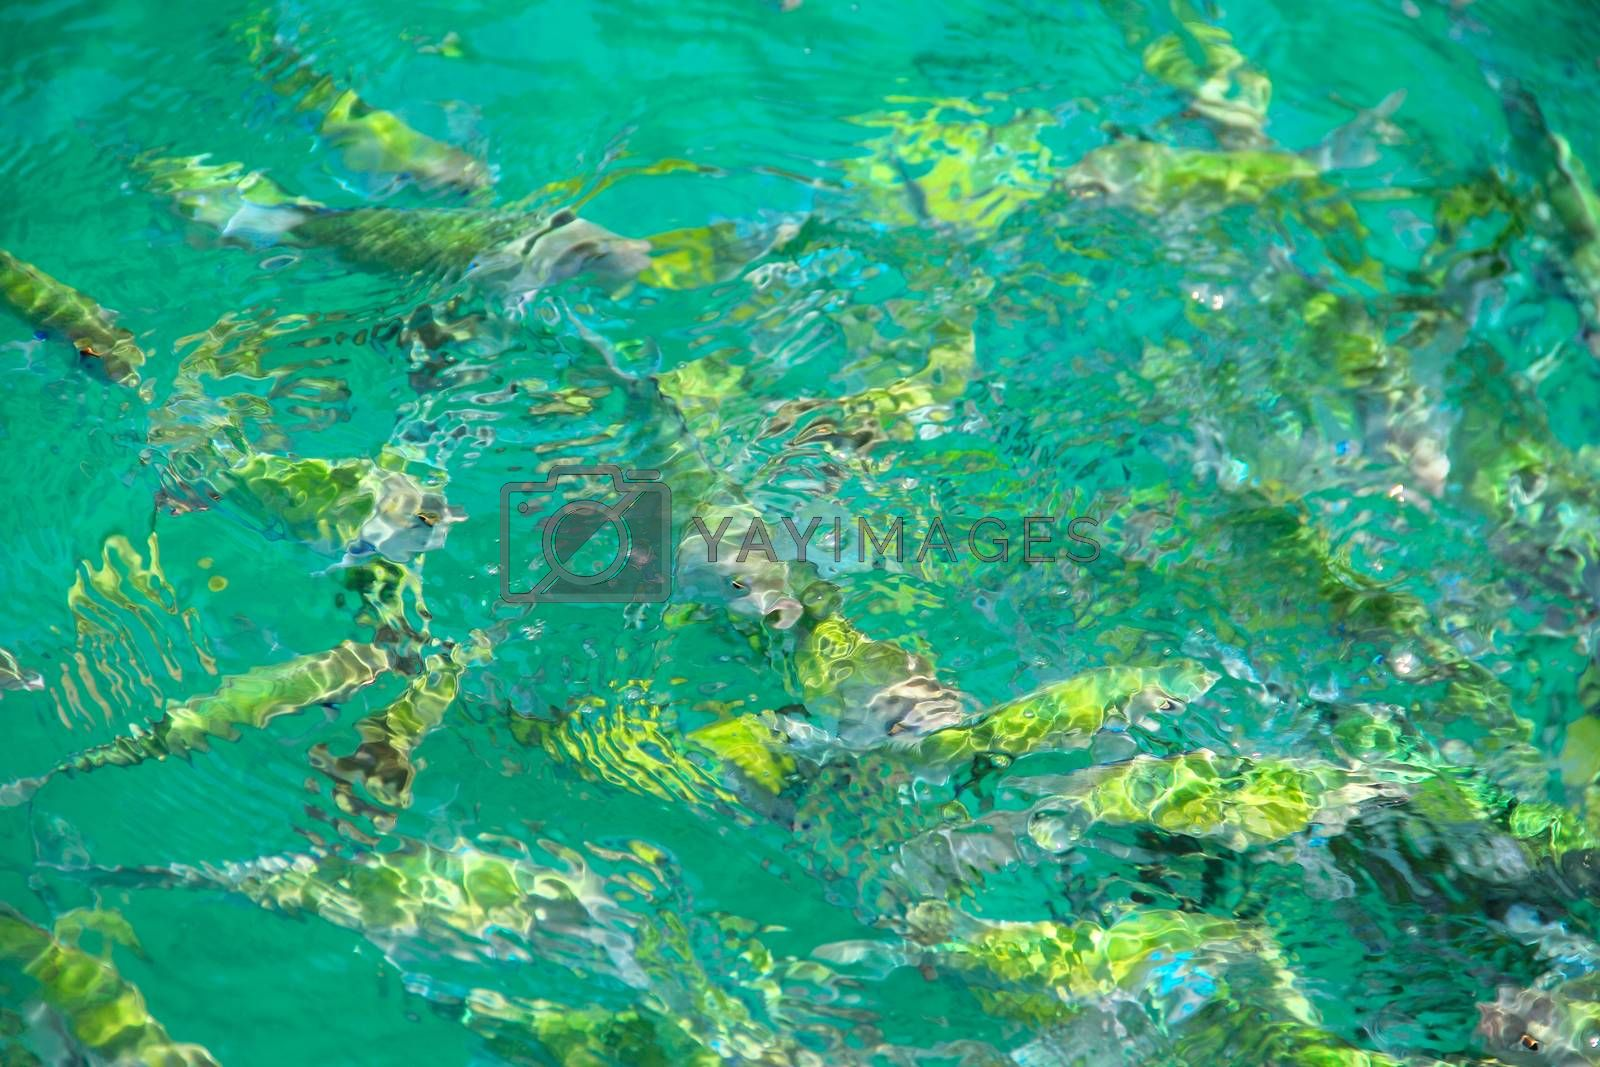 Royalty free image of Tropical Fish in water by destillat